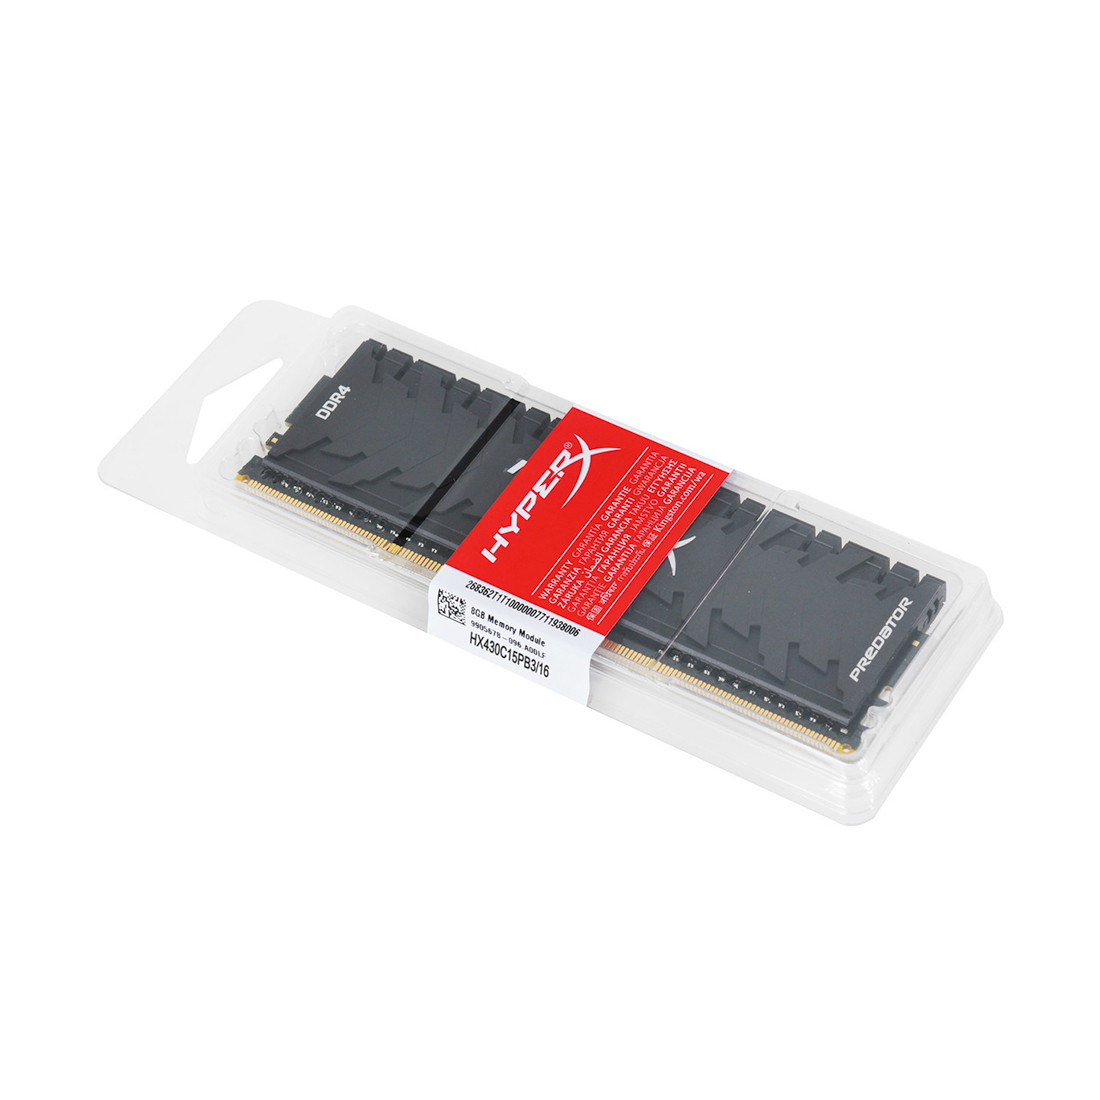 Модуль памяти Kingston HyperX Predator HX430C15PB3/16 DDR4 DIMM 16Gb 3000 MHz CL15